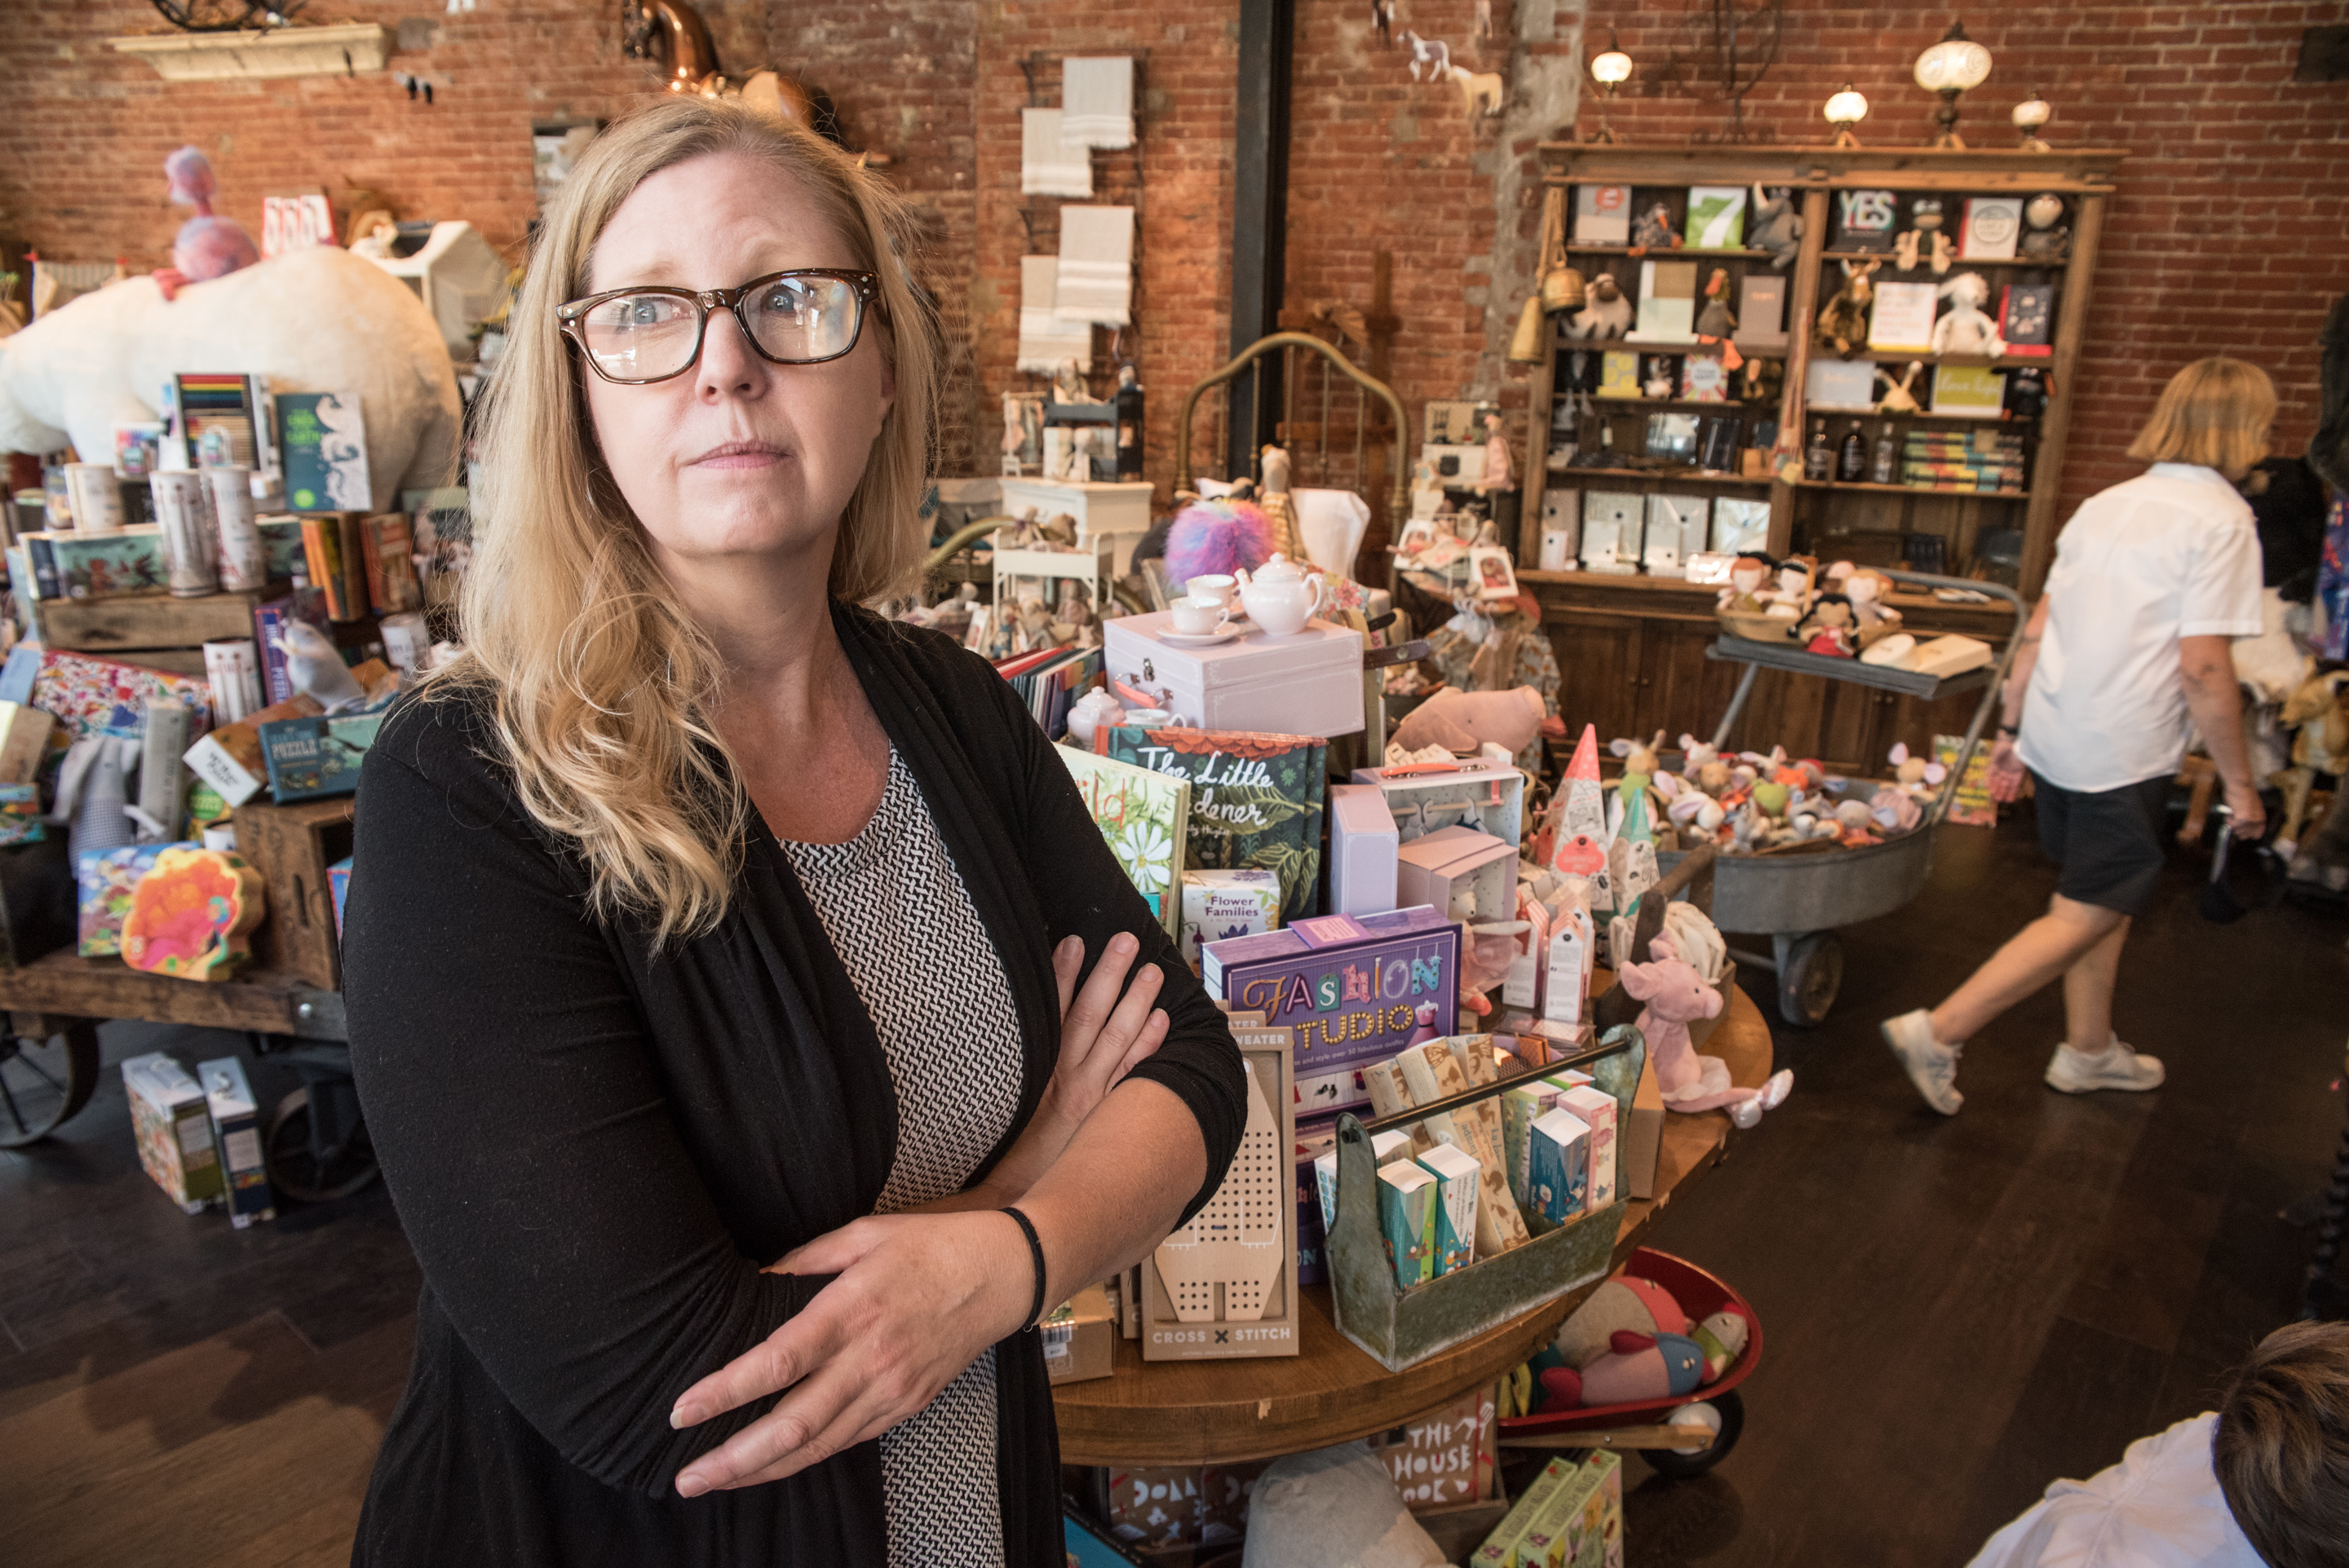 Carrie Kohs owns pucciManuli, an eclectic toy and gift shop in downtown Ardmore. In her other role as activist, she is involved in the revitalization and redevelopment of Ardmore´s business district.